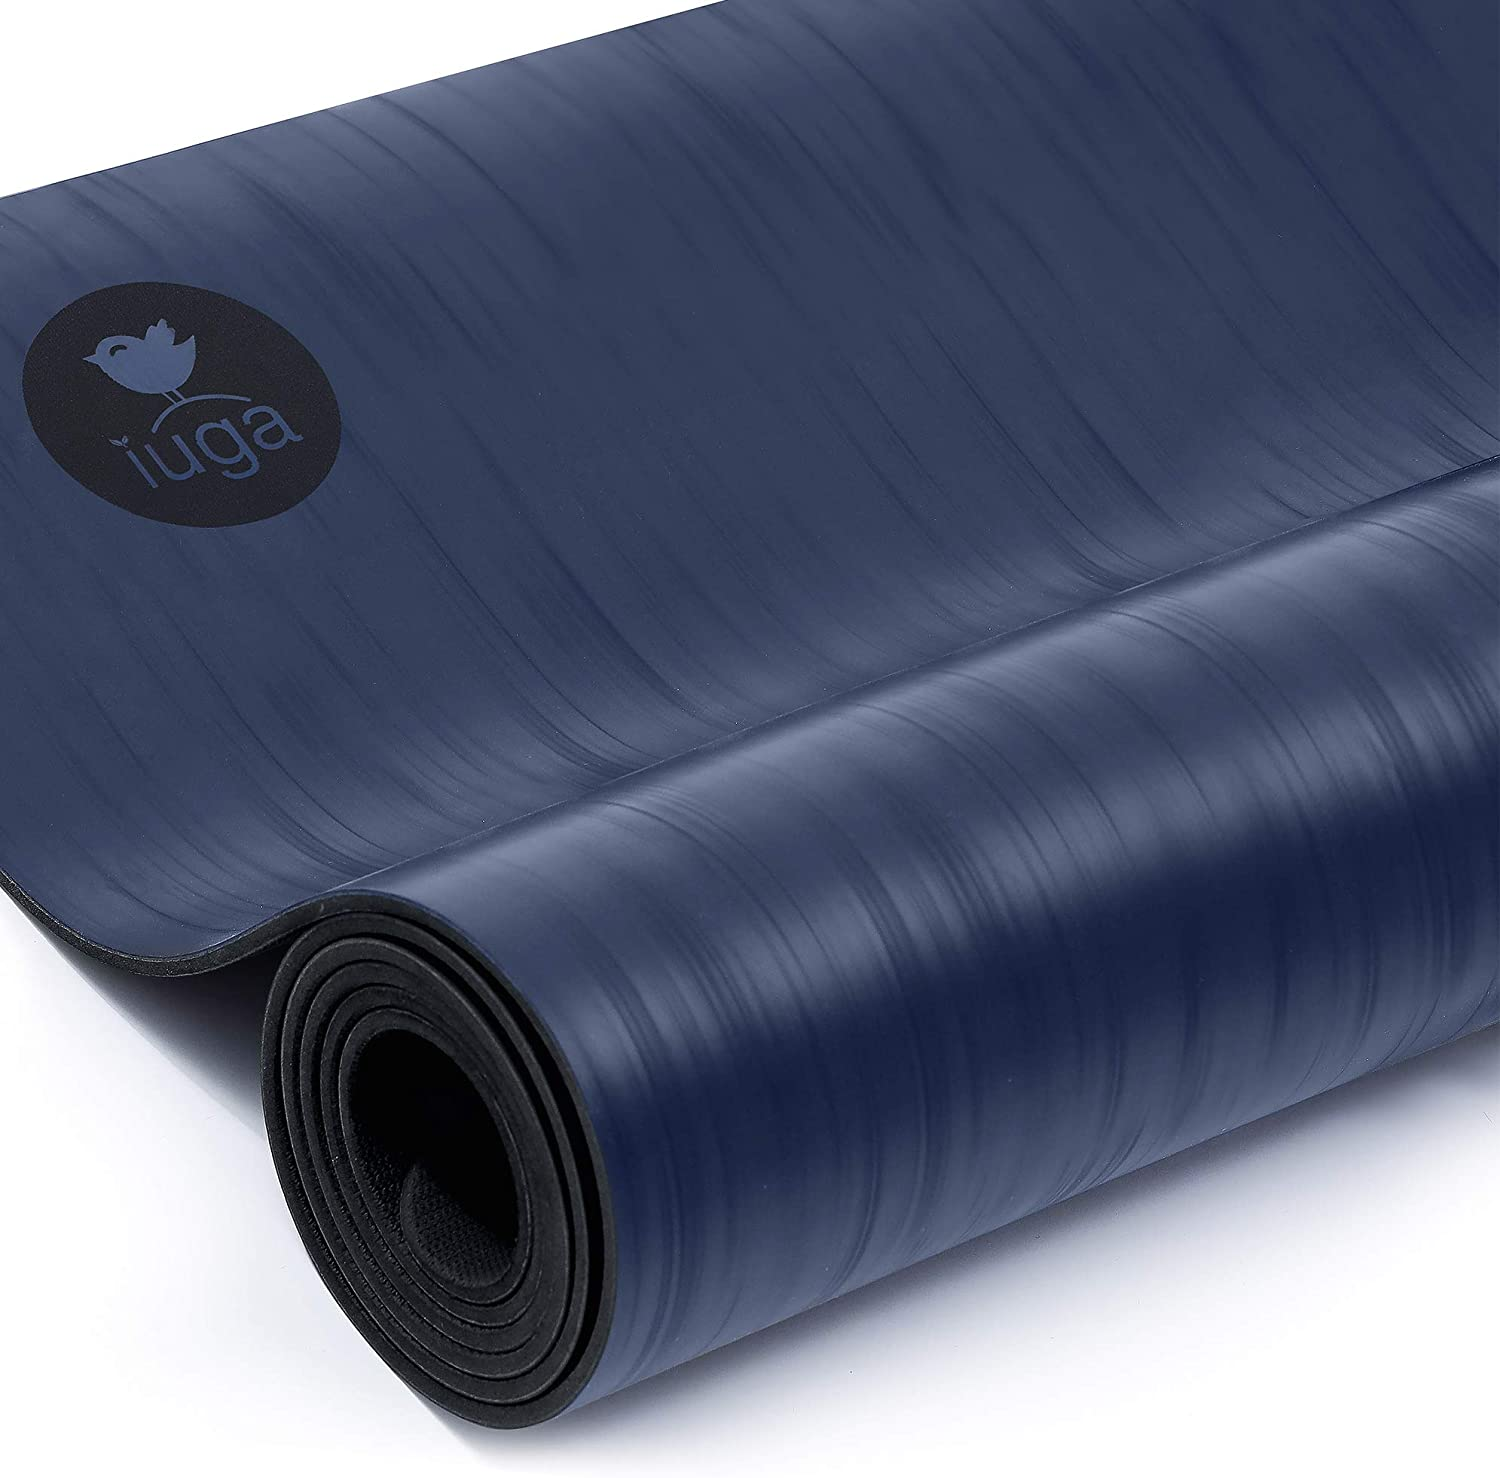 IUGA Pro Non Slip Yoga Mat, Unbeatable Non Slip Performance, Eco Friendly and SGS Certified Material for Hot Yoga, Odorless Lightweight and Extra ...